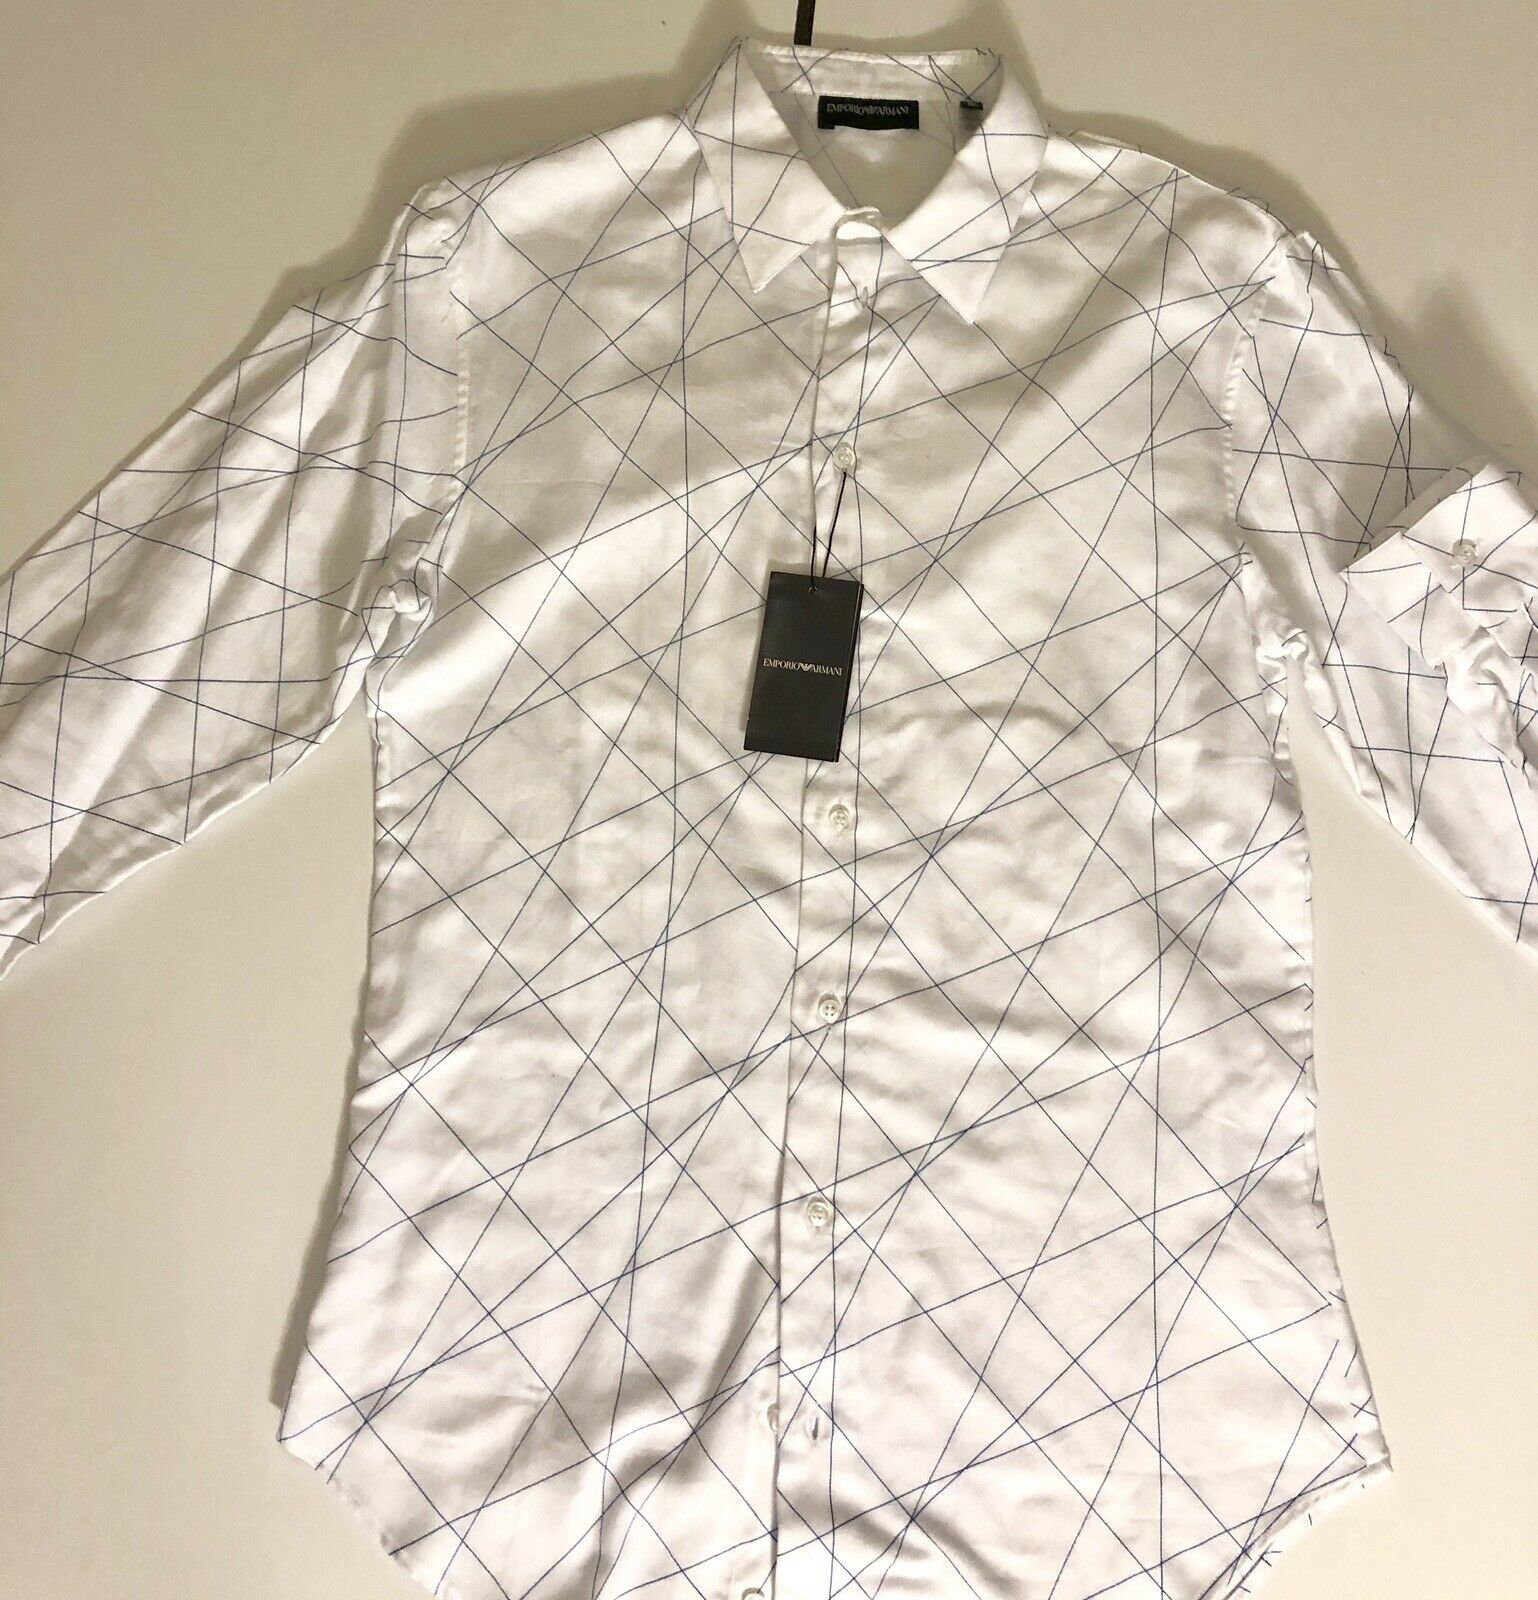 NWT $395 Emporio Armani Cotton White Dress Shirt Size 39 Eu Z1CF2T